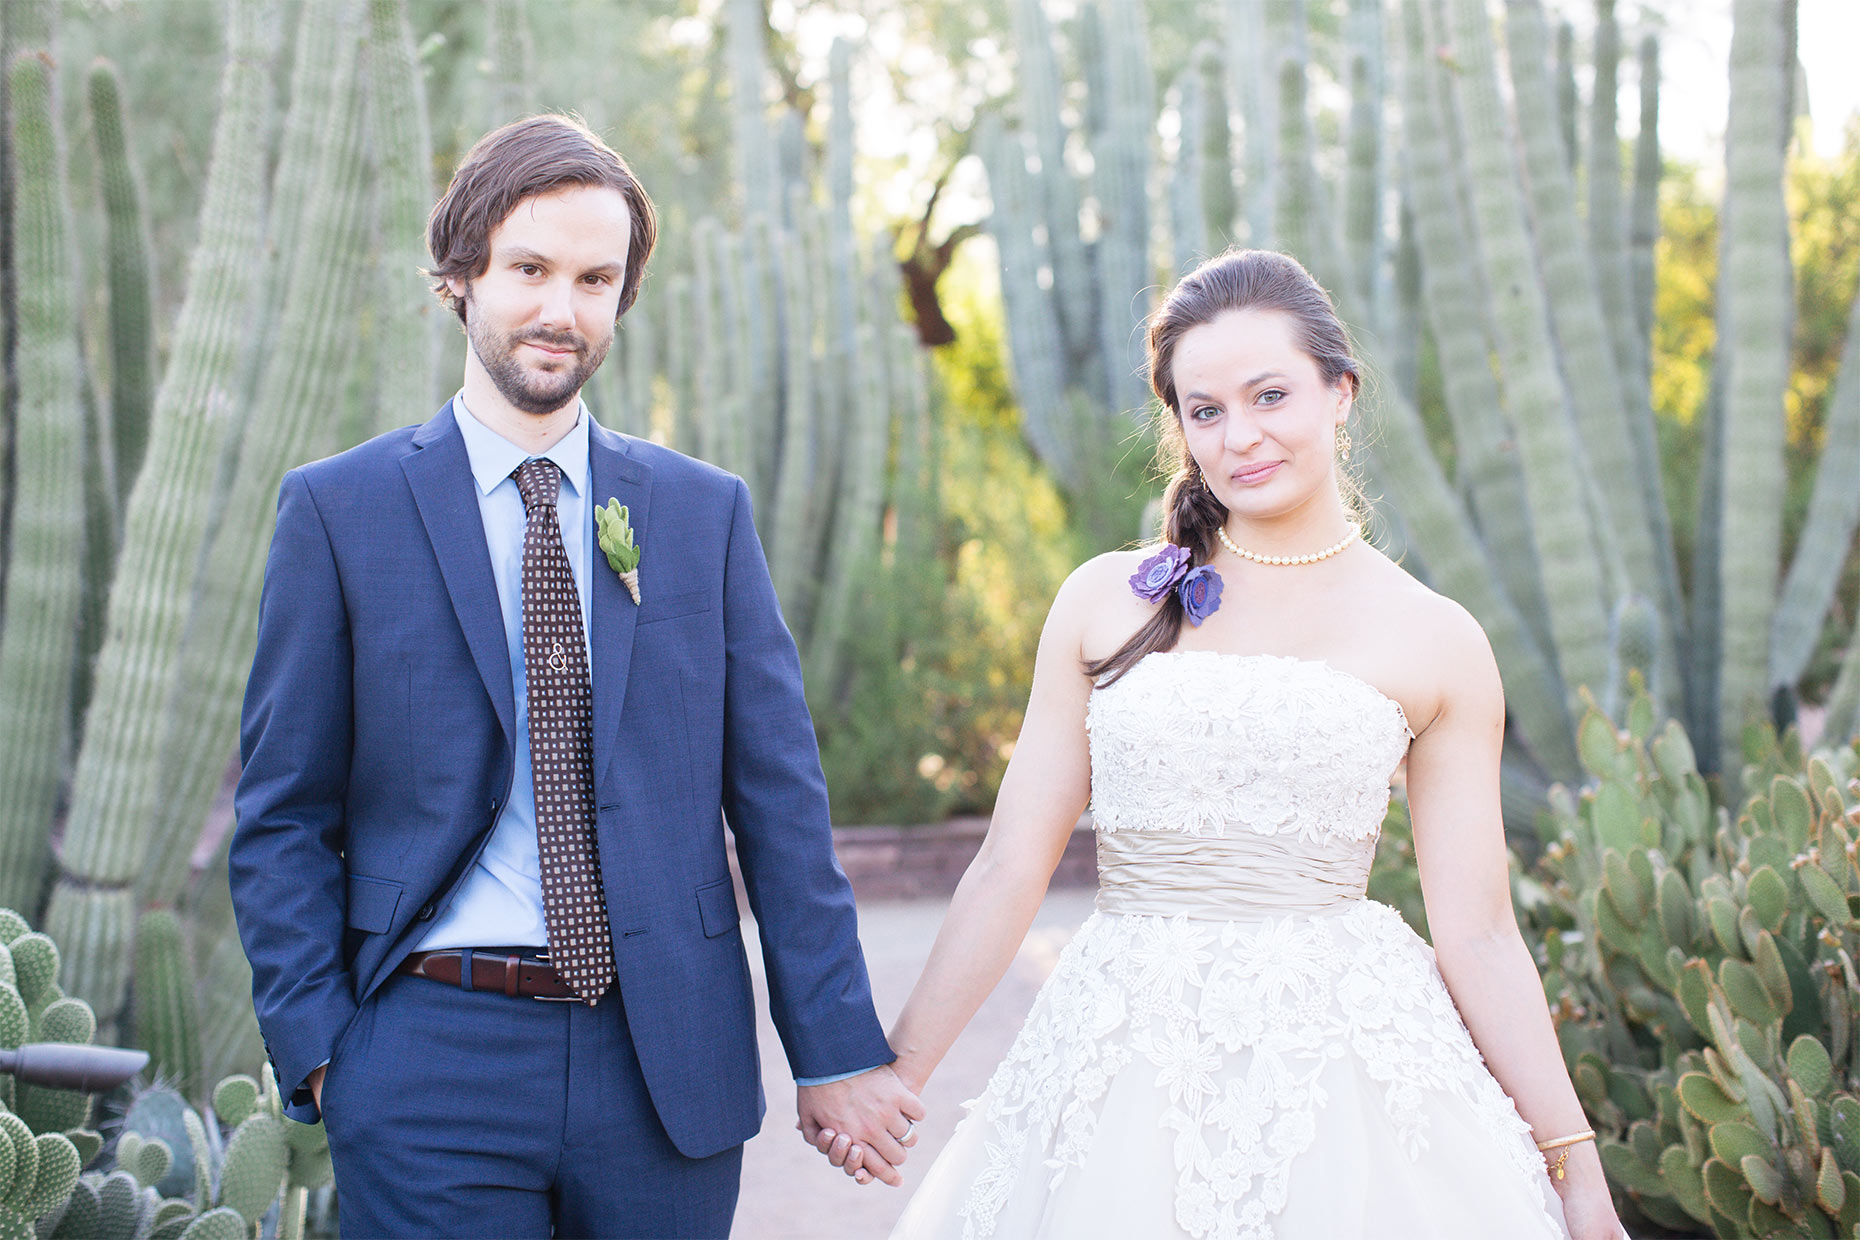 destination wedding Pheonix AZ omaha wedding photographer021